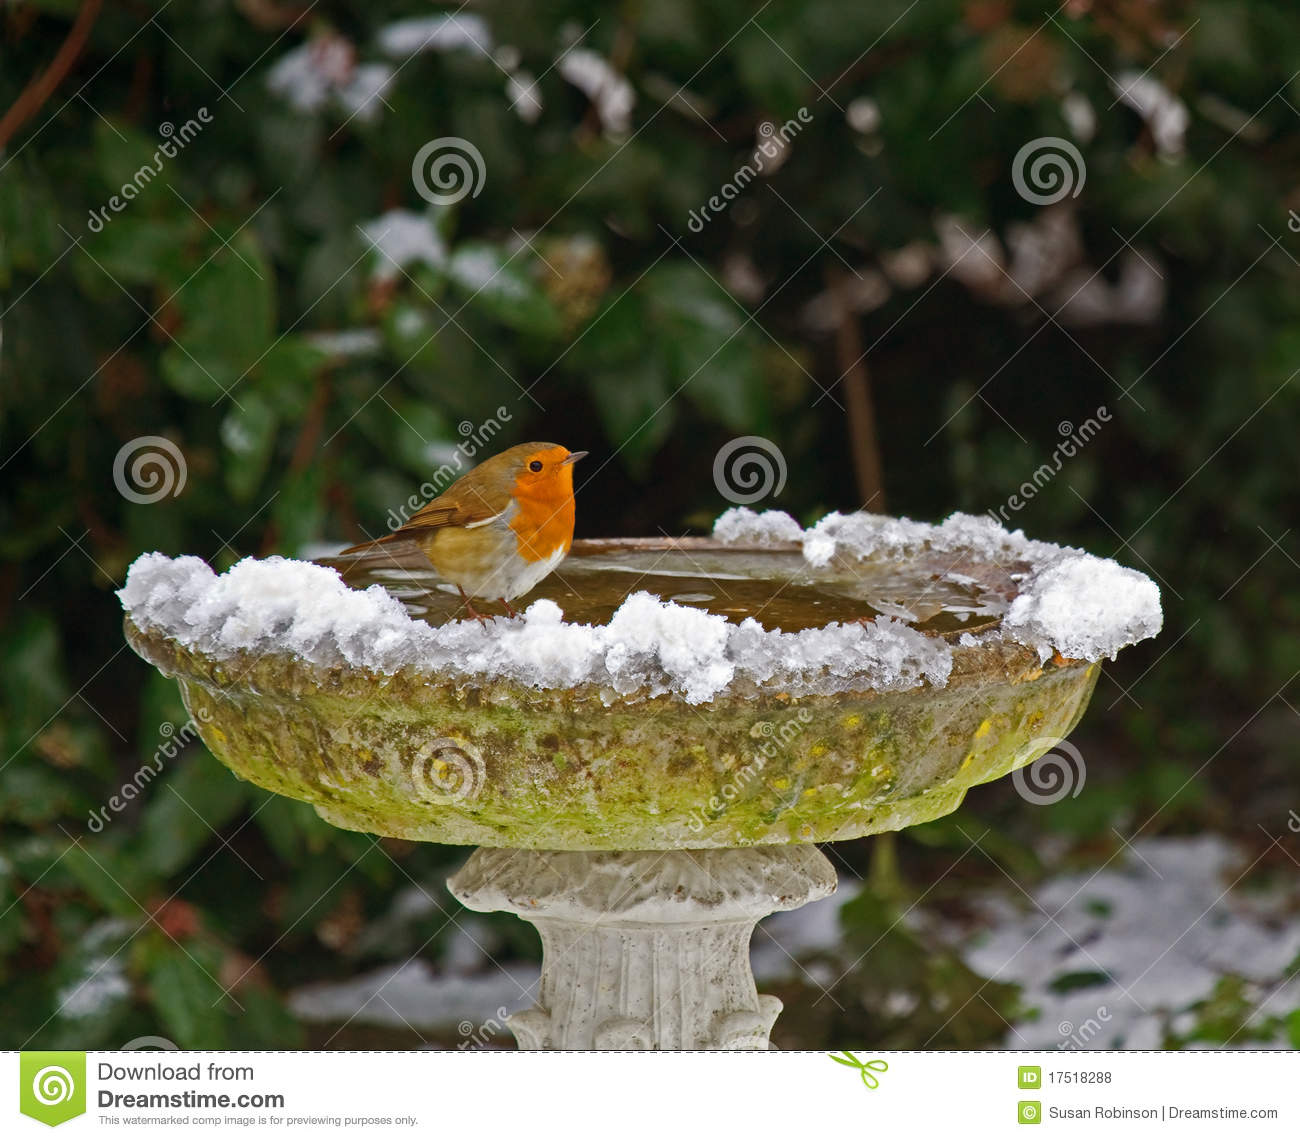 Robin Bird in Bath